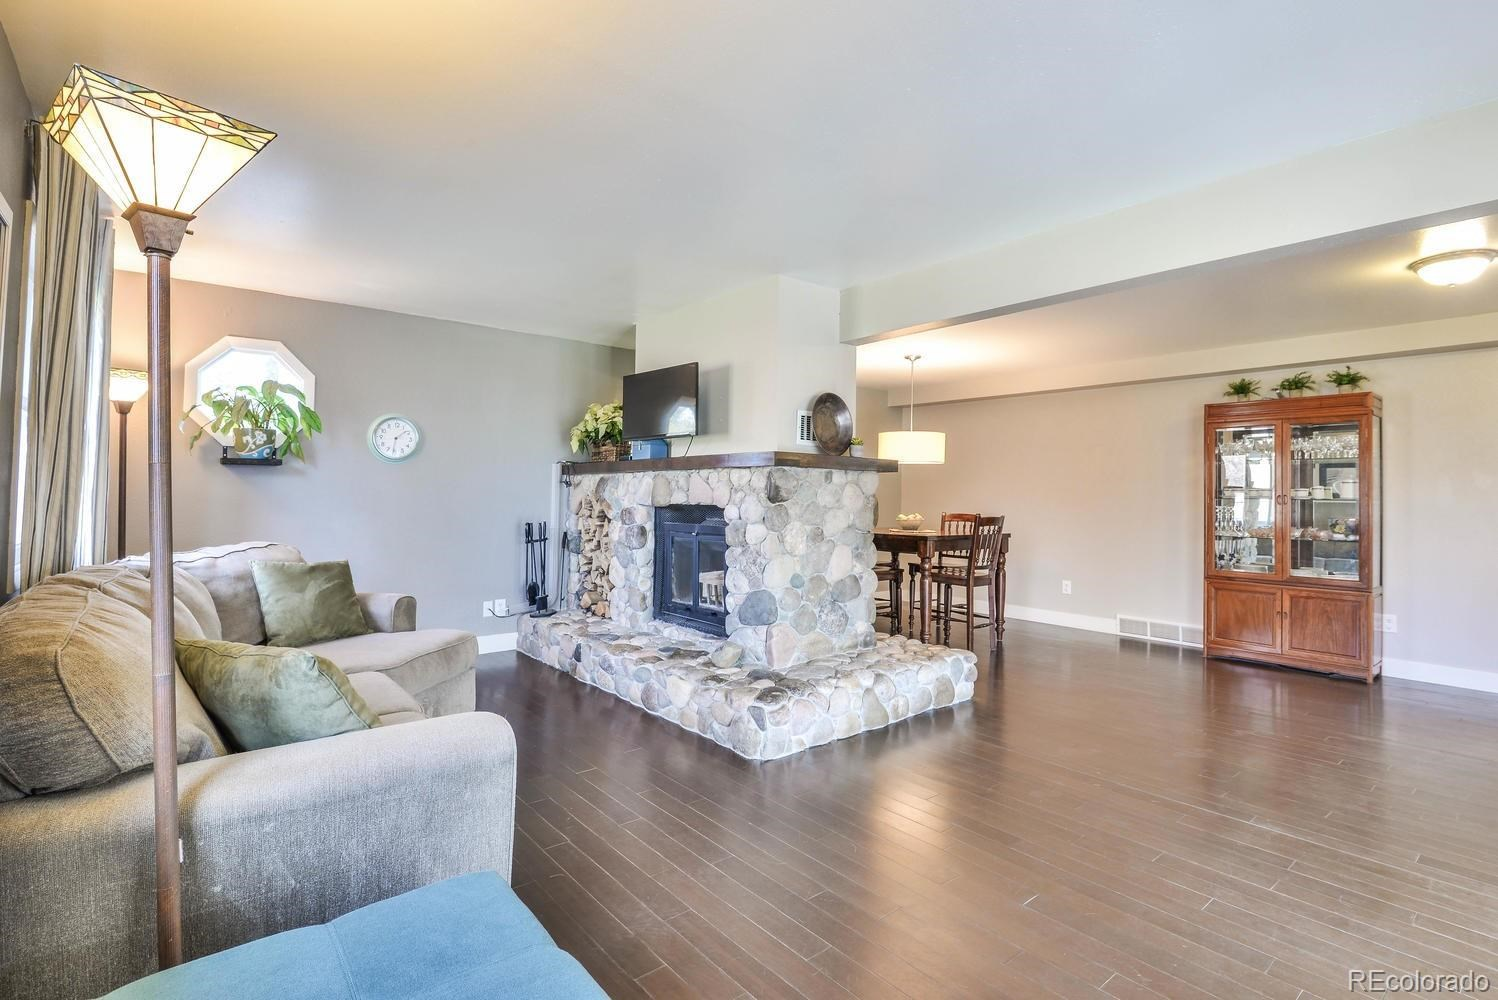 MLS# 6724855 - 4 - 2606 Shadow Mountain Drive, Fort Collins, CO 80525